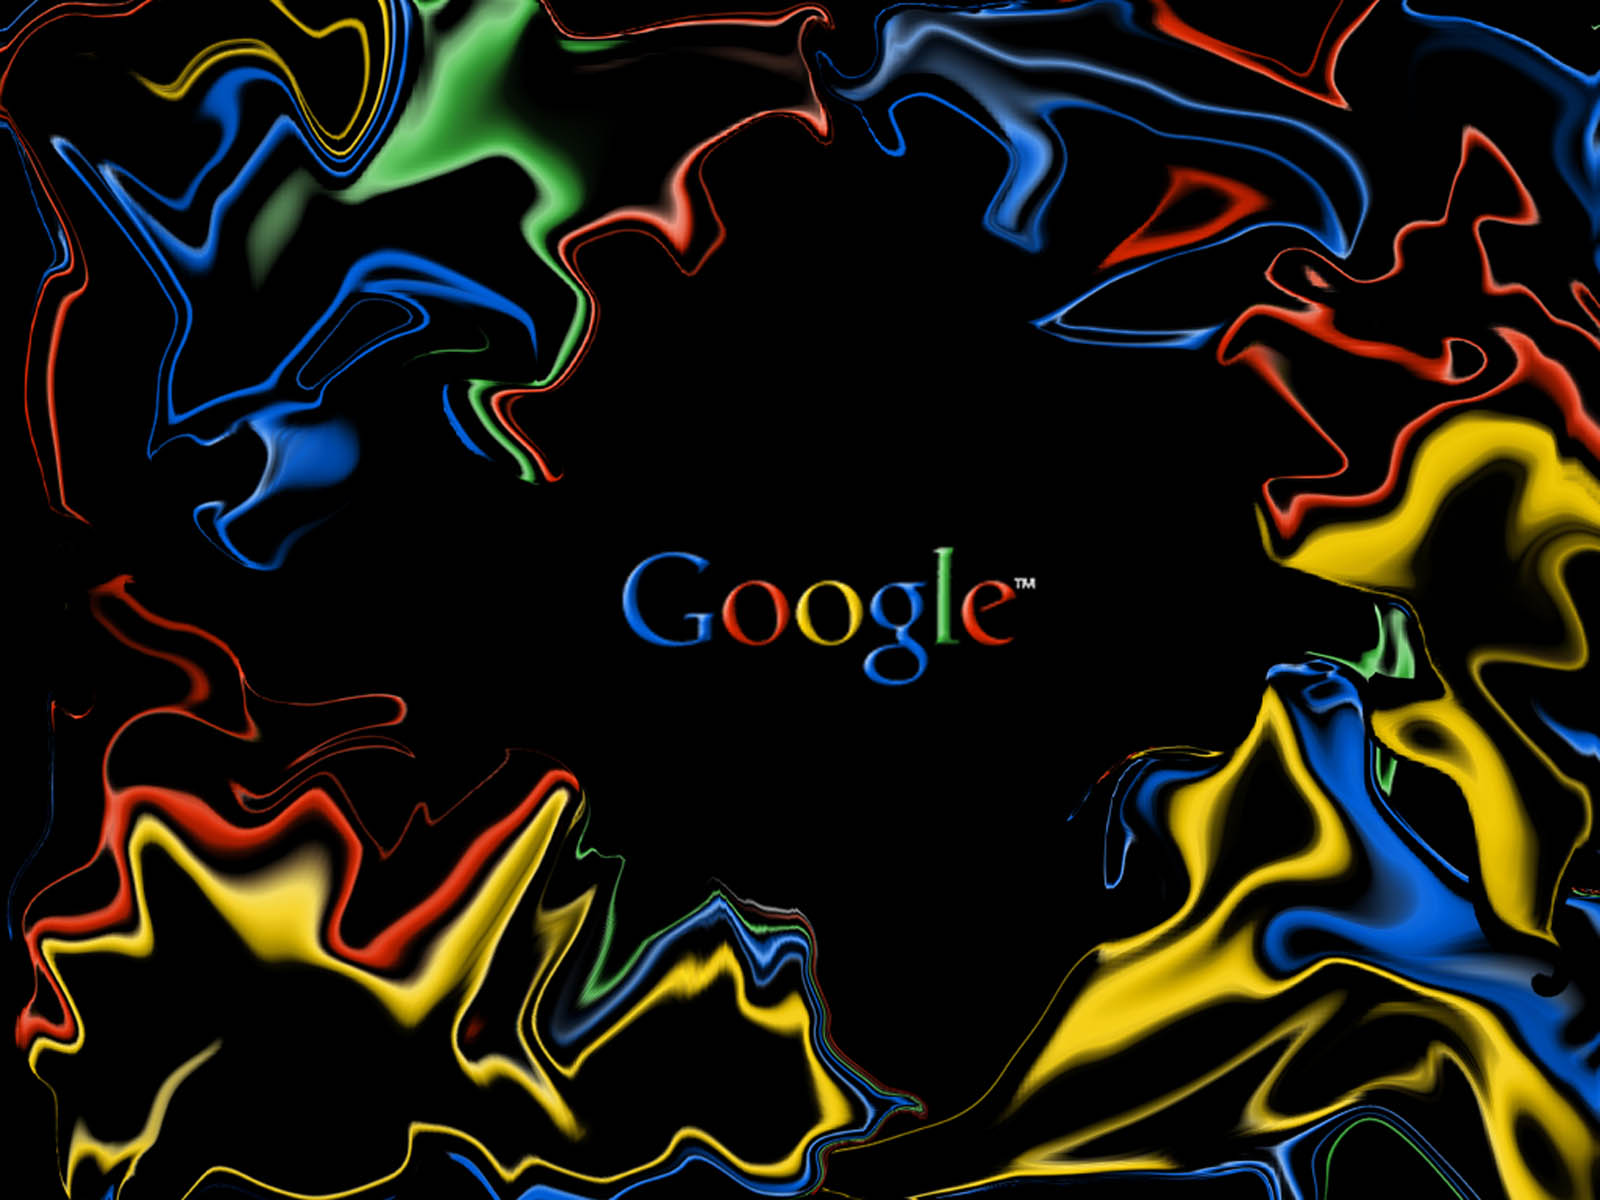 Google Desktop Backgrounds Wallpaper